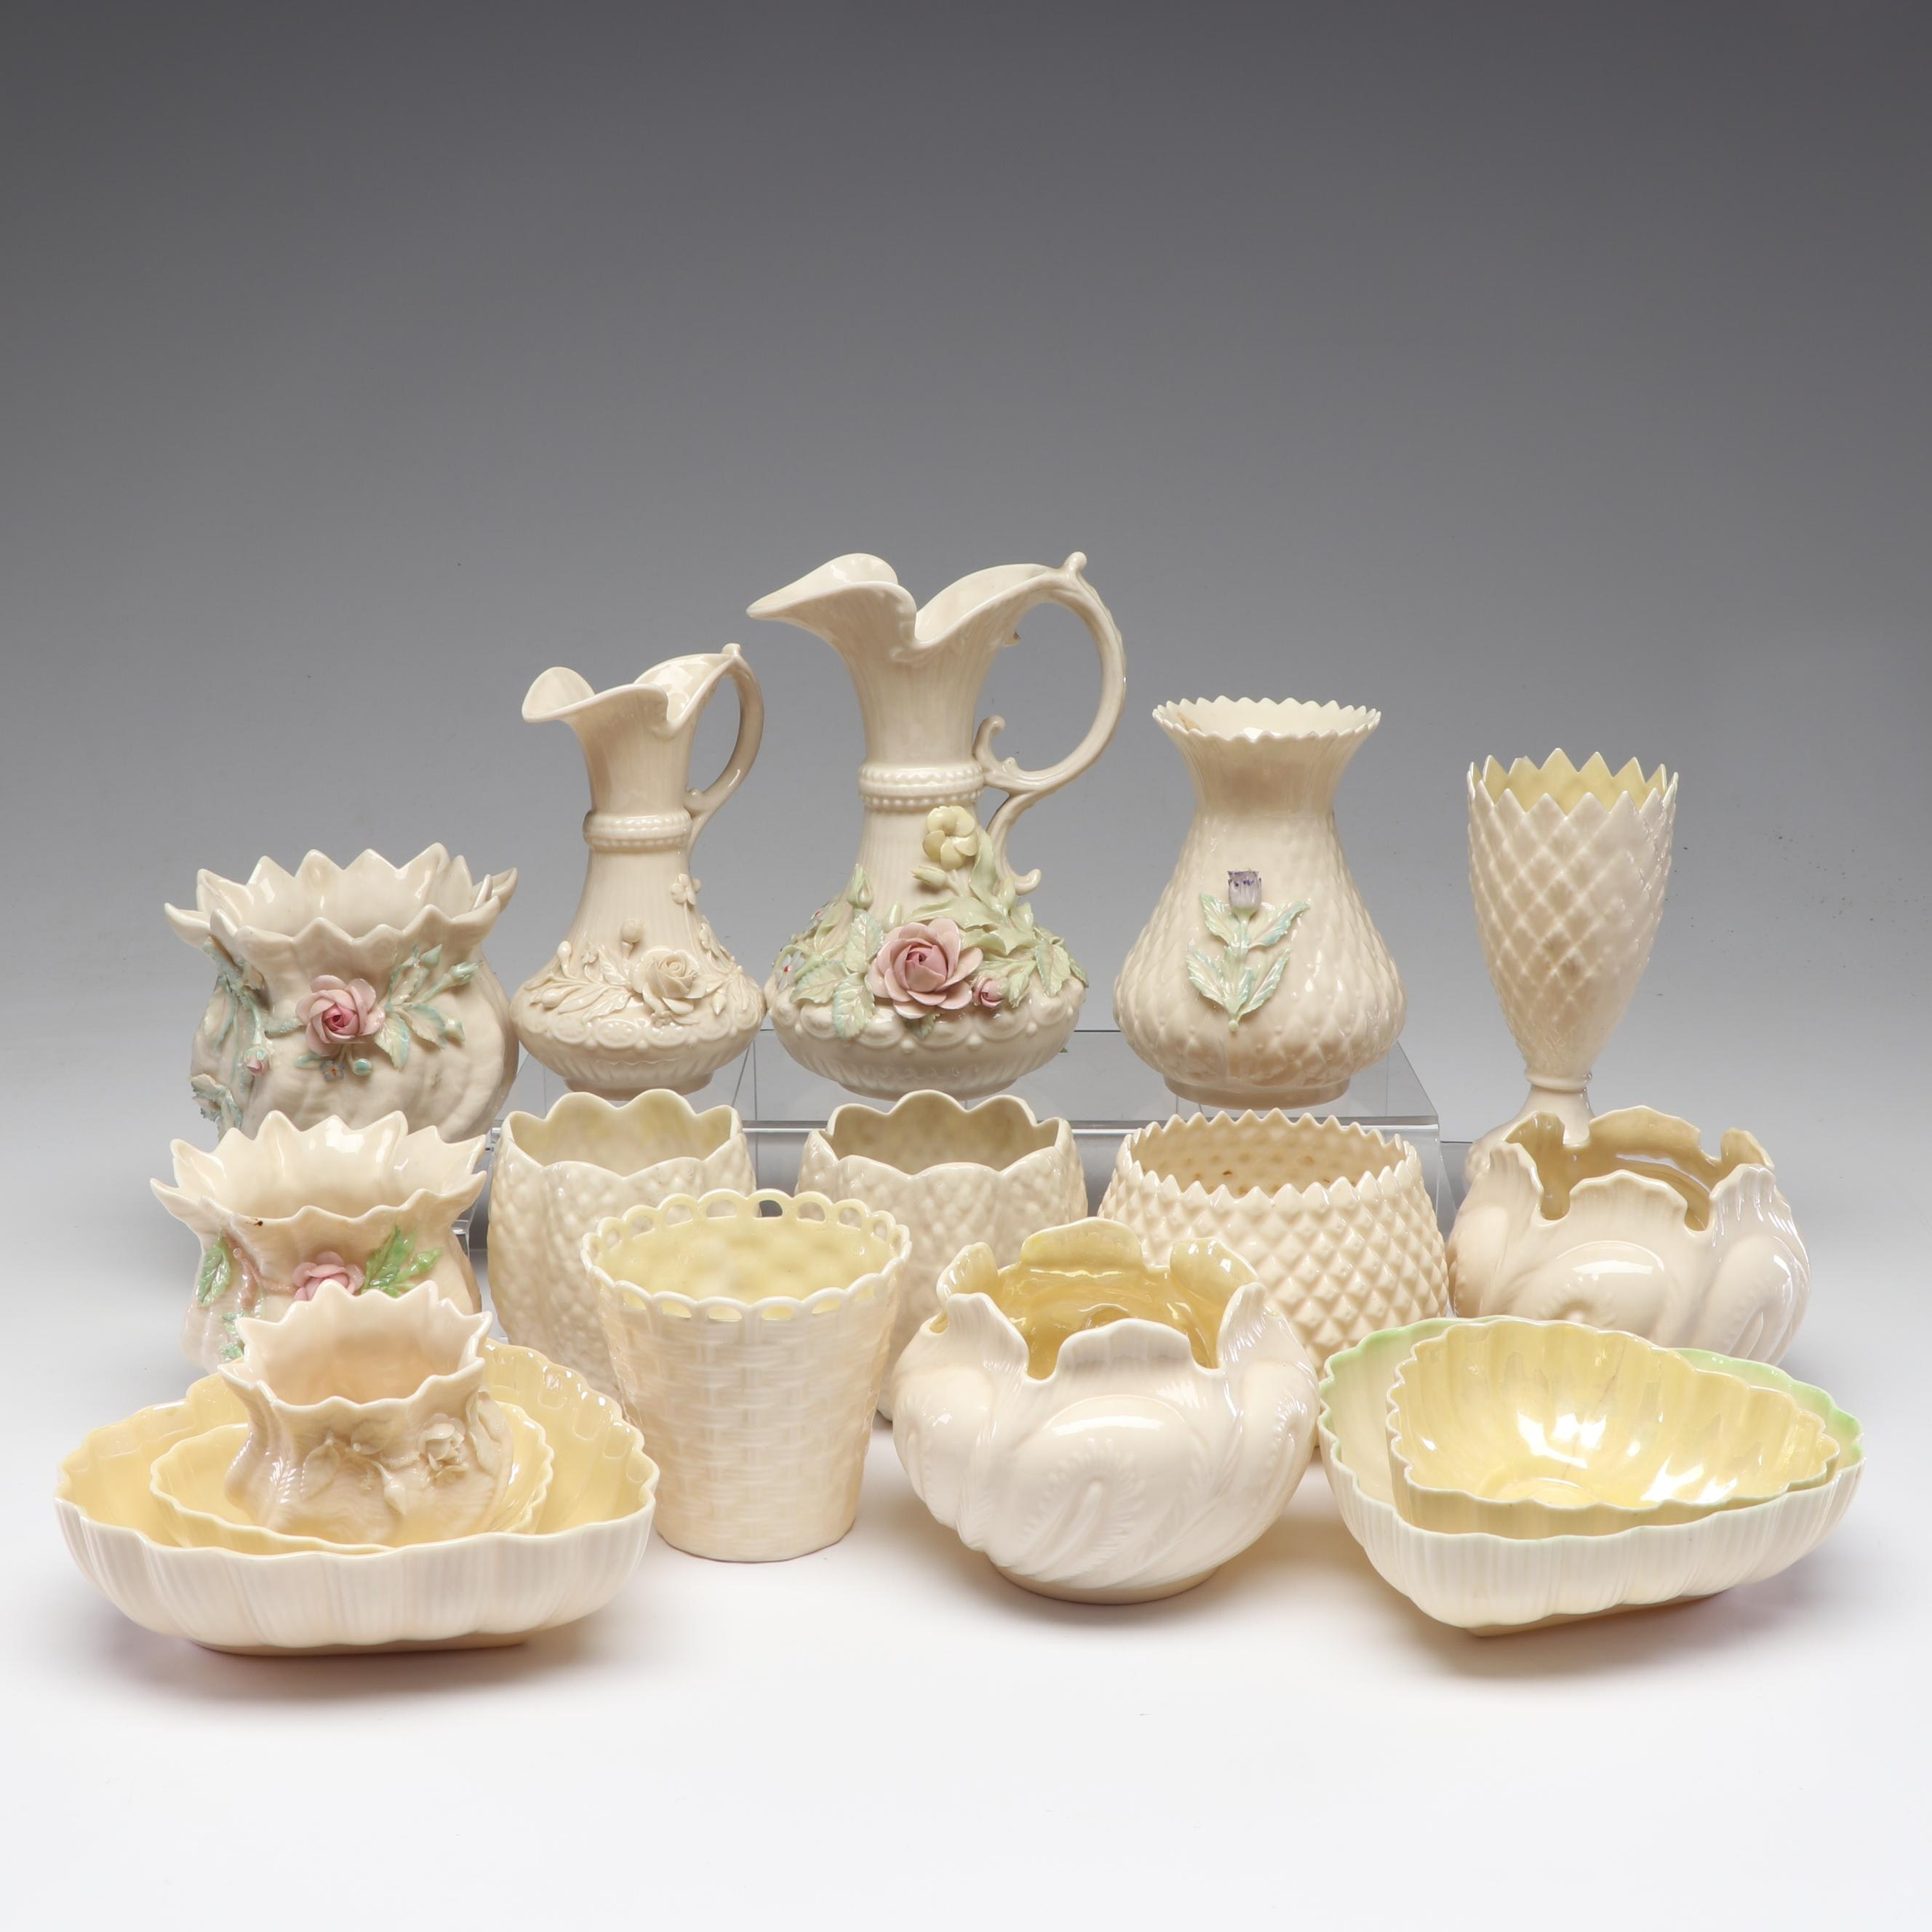 Belleek Vases and Table Accents Including Shamrock and Diamond Patterns